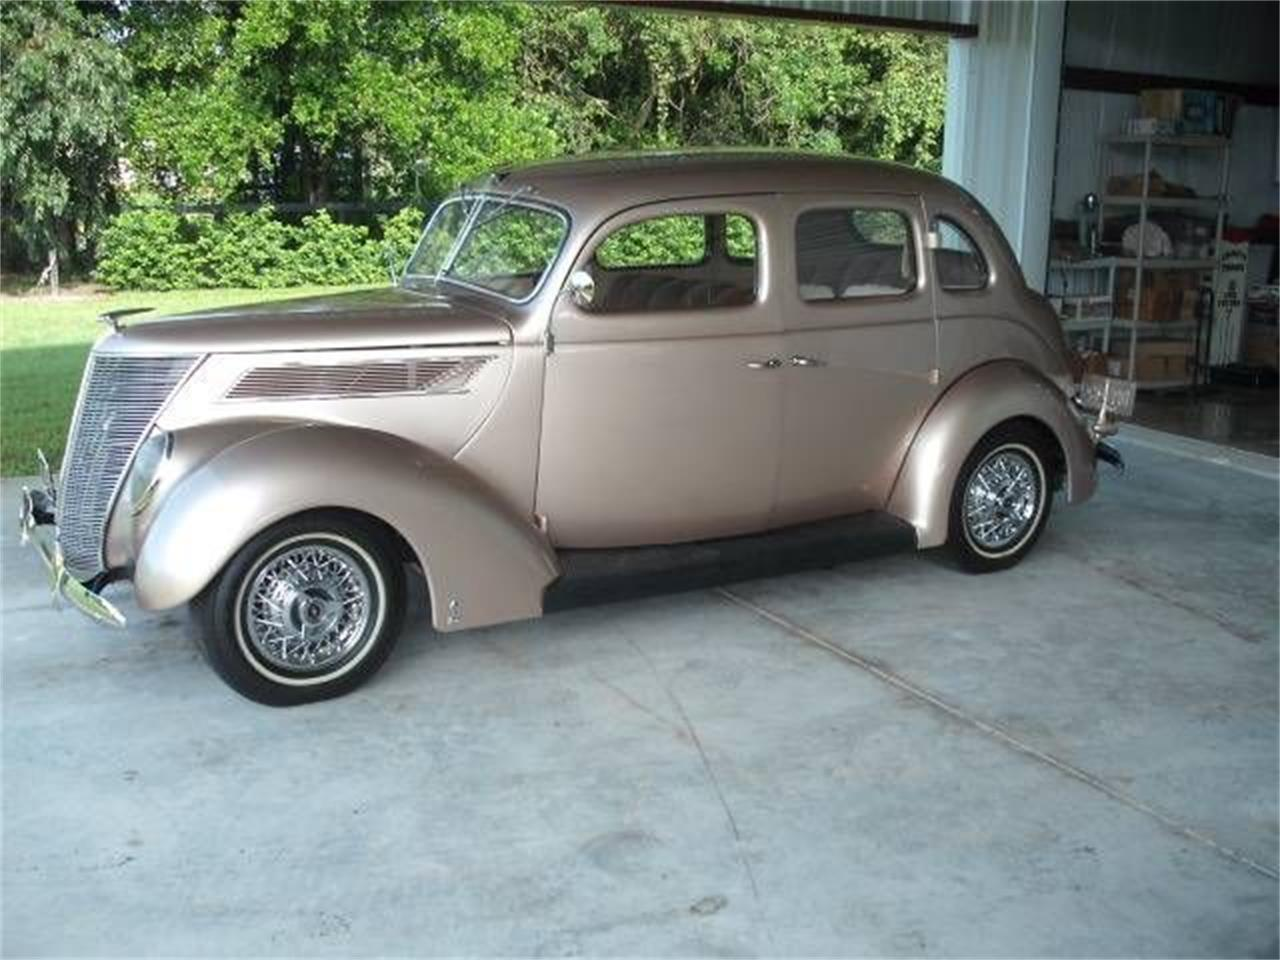 Large Picture of '37 Ford Deluxe located in Cadillac Michigan - $41,495.00 Offered by Classic Car Deals - P47A